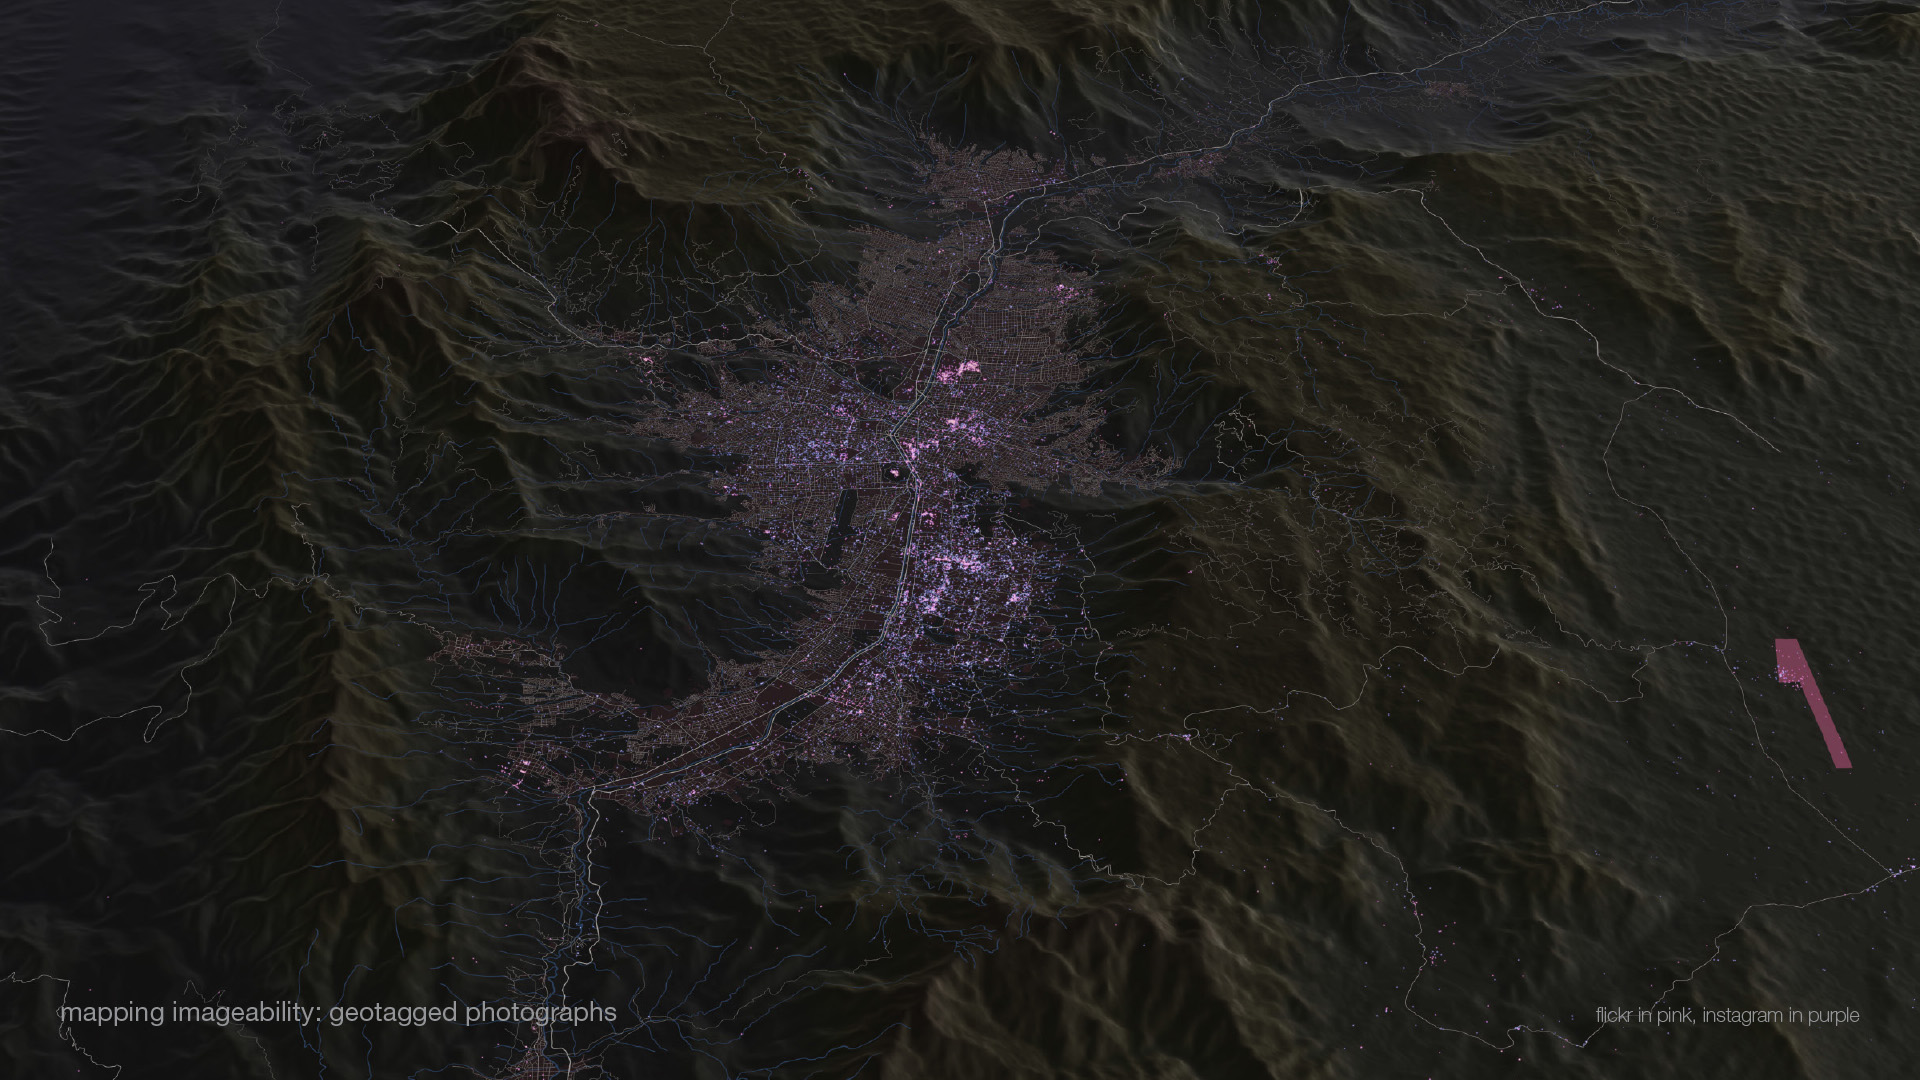 Mapping Imageability: Medellín, Colombia